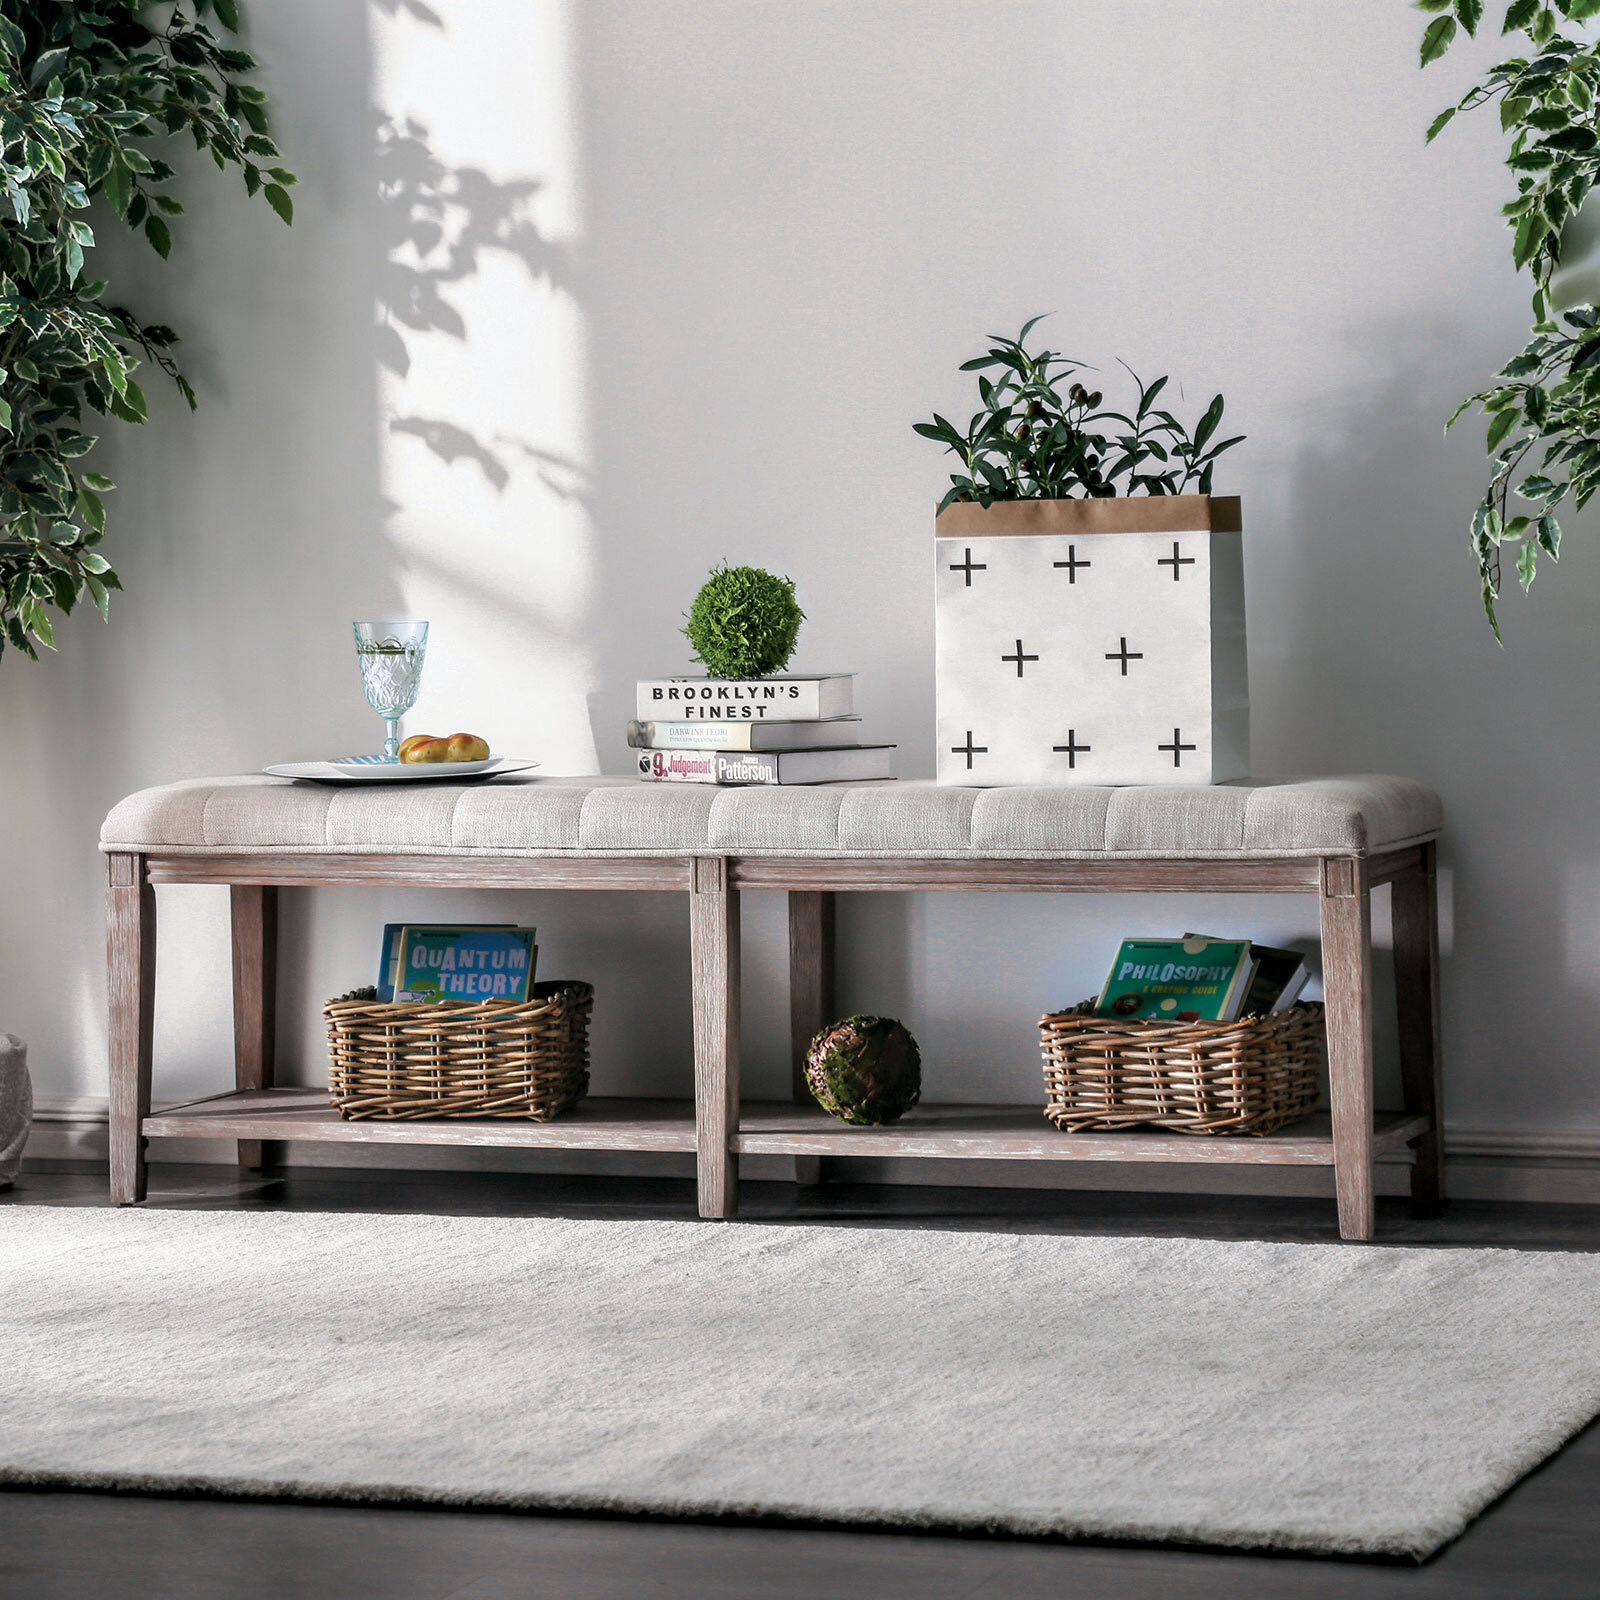 Phenomenal Varela Upholstered Storage Bench Gmtry Best Dining Table And Chair Ideas Images Gmtryco